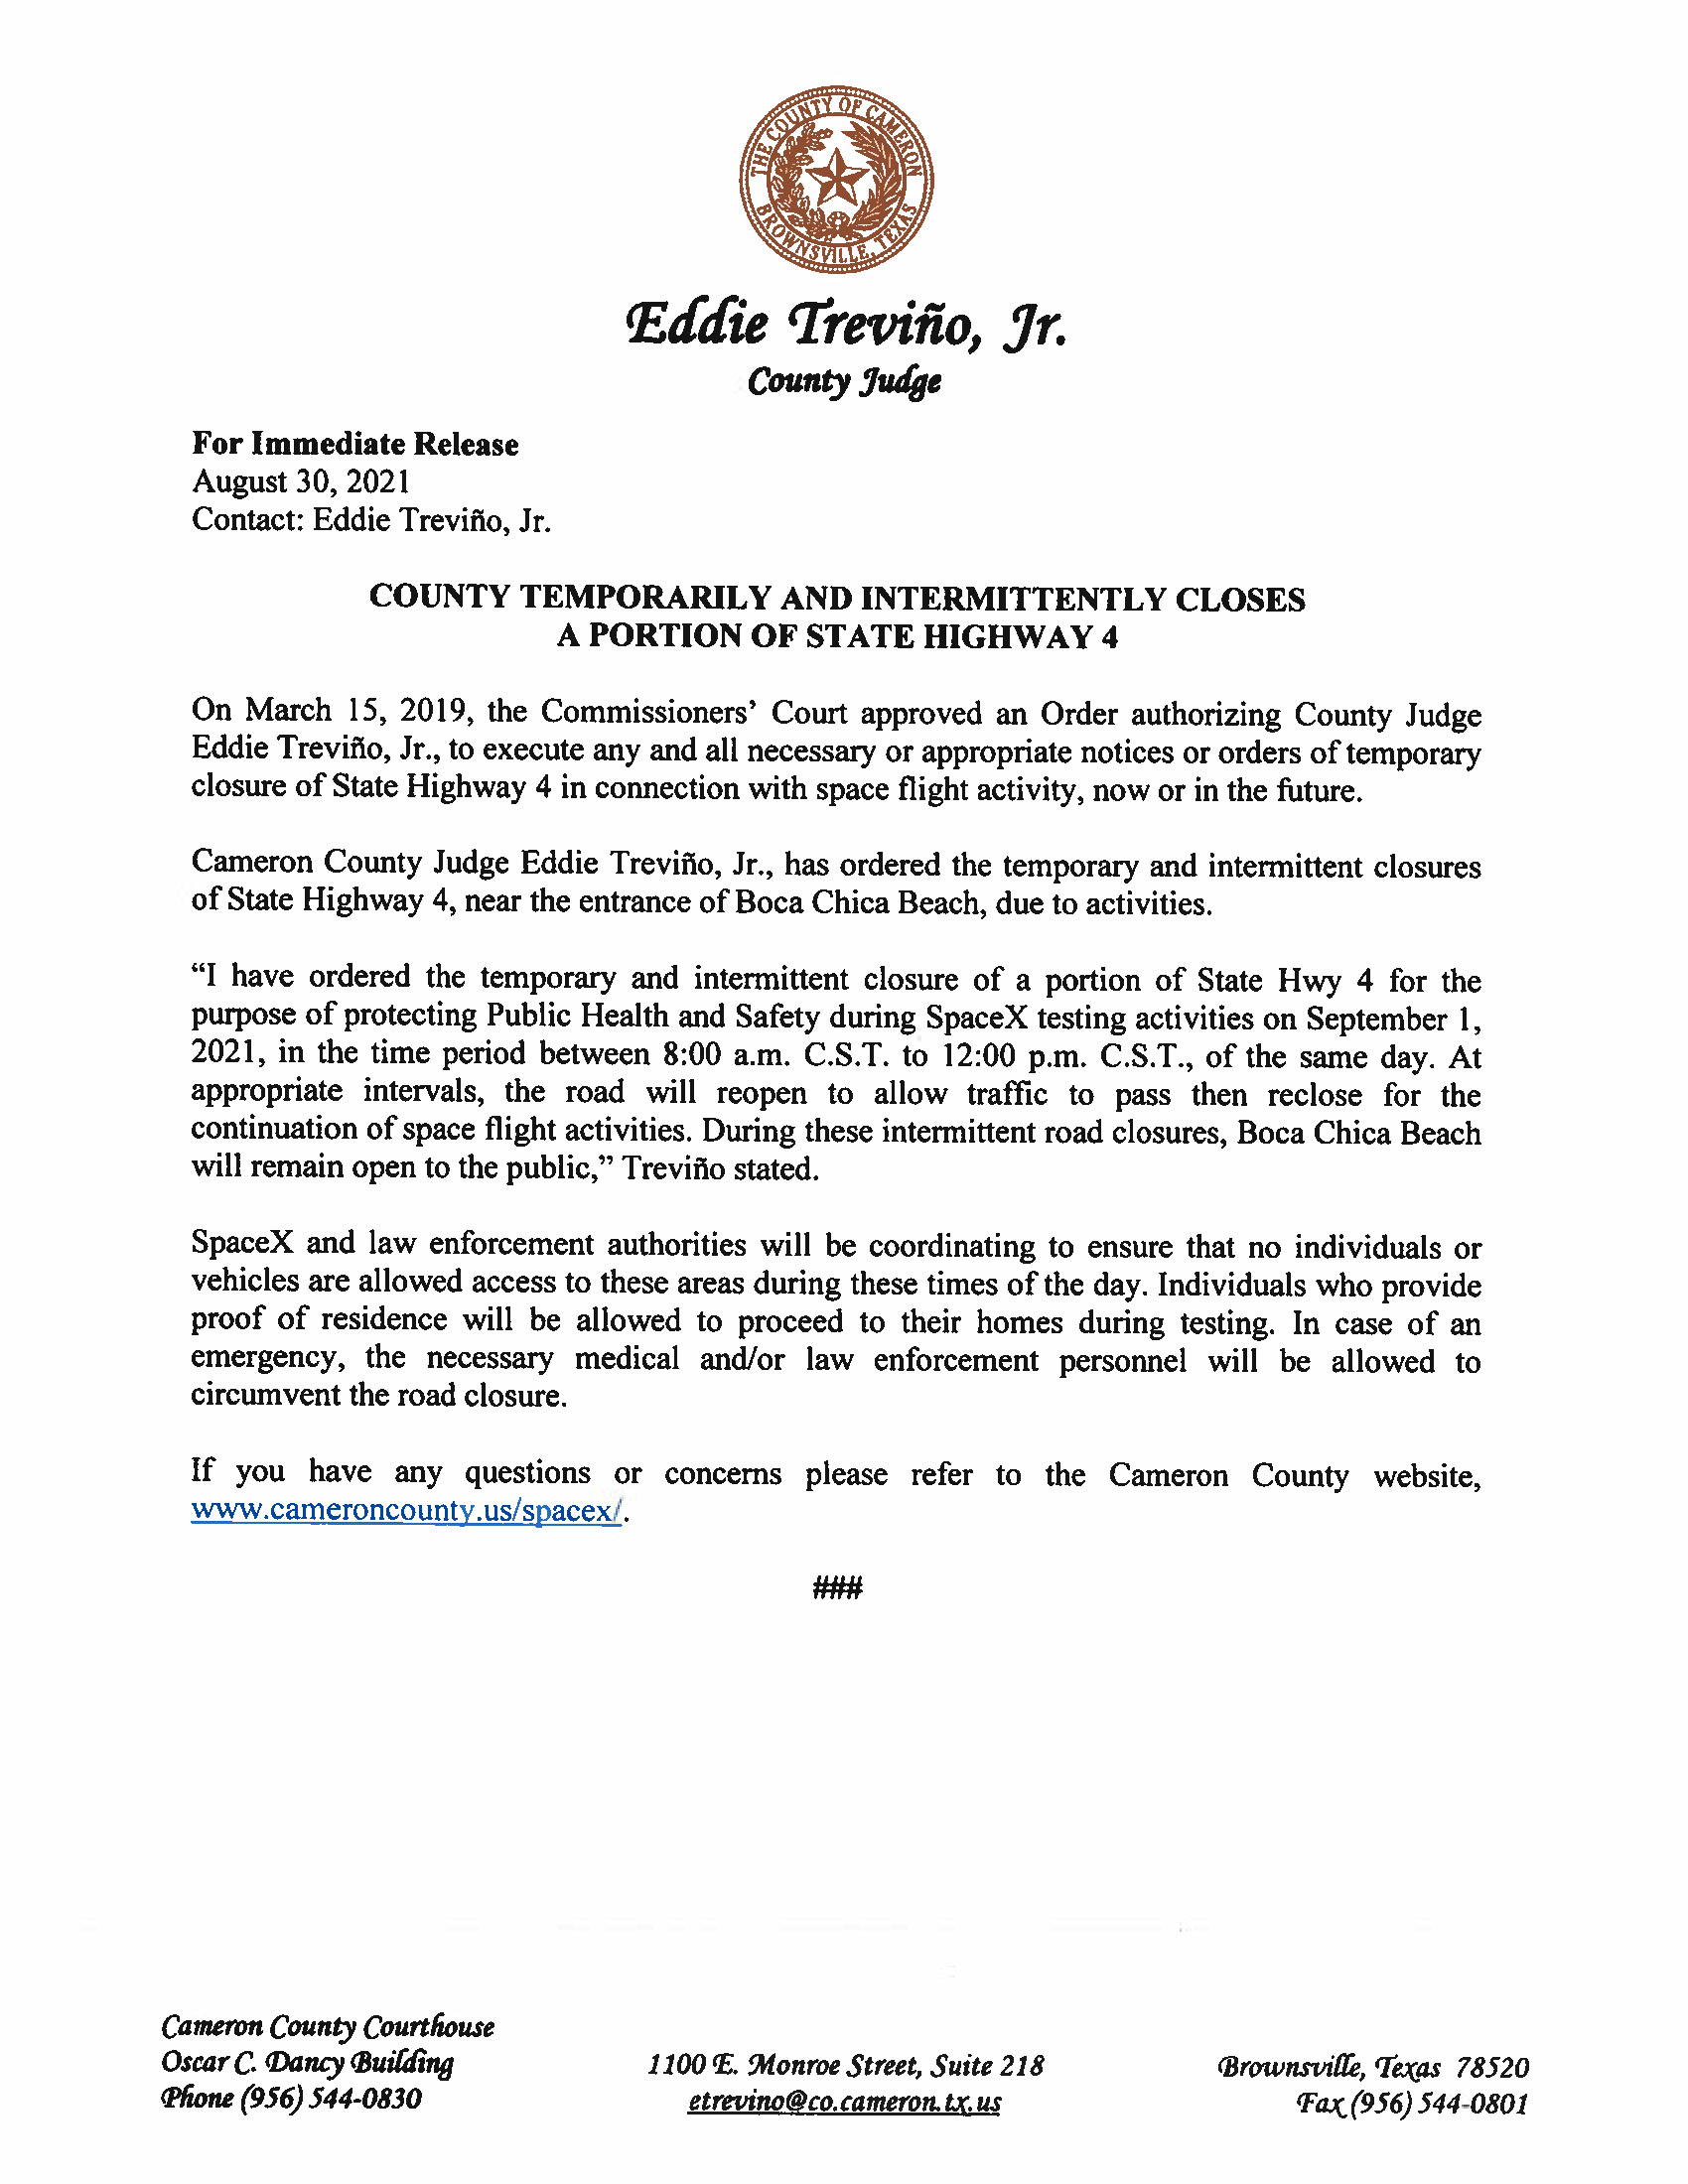 Press Release On Order Related To SpaceX Flight.ROAD CLOSURE. 09.01.2021 Page 1